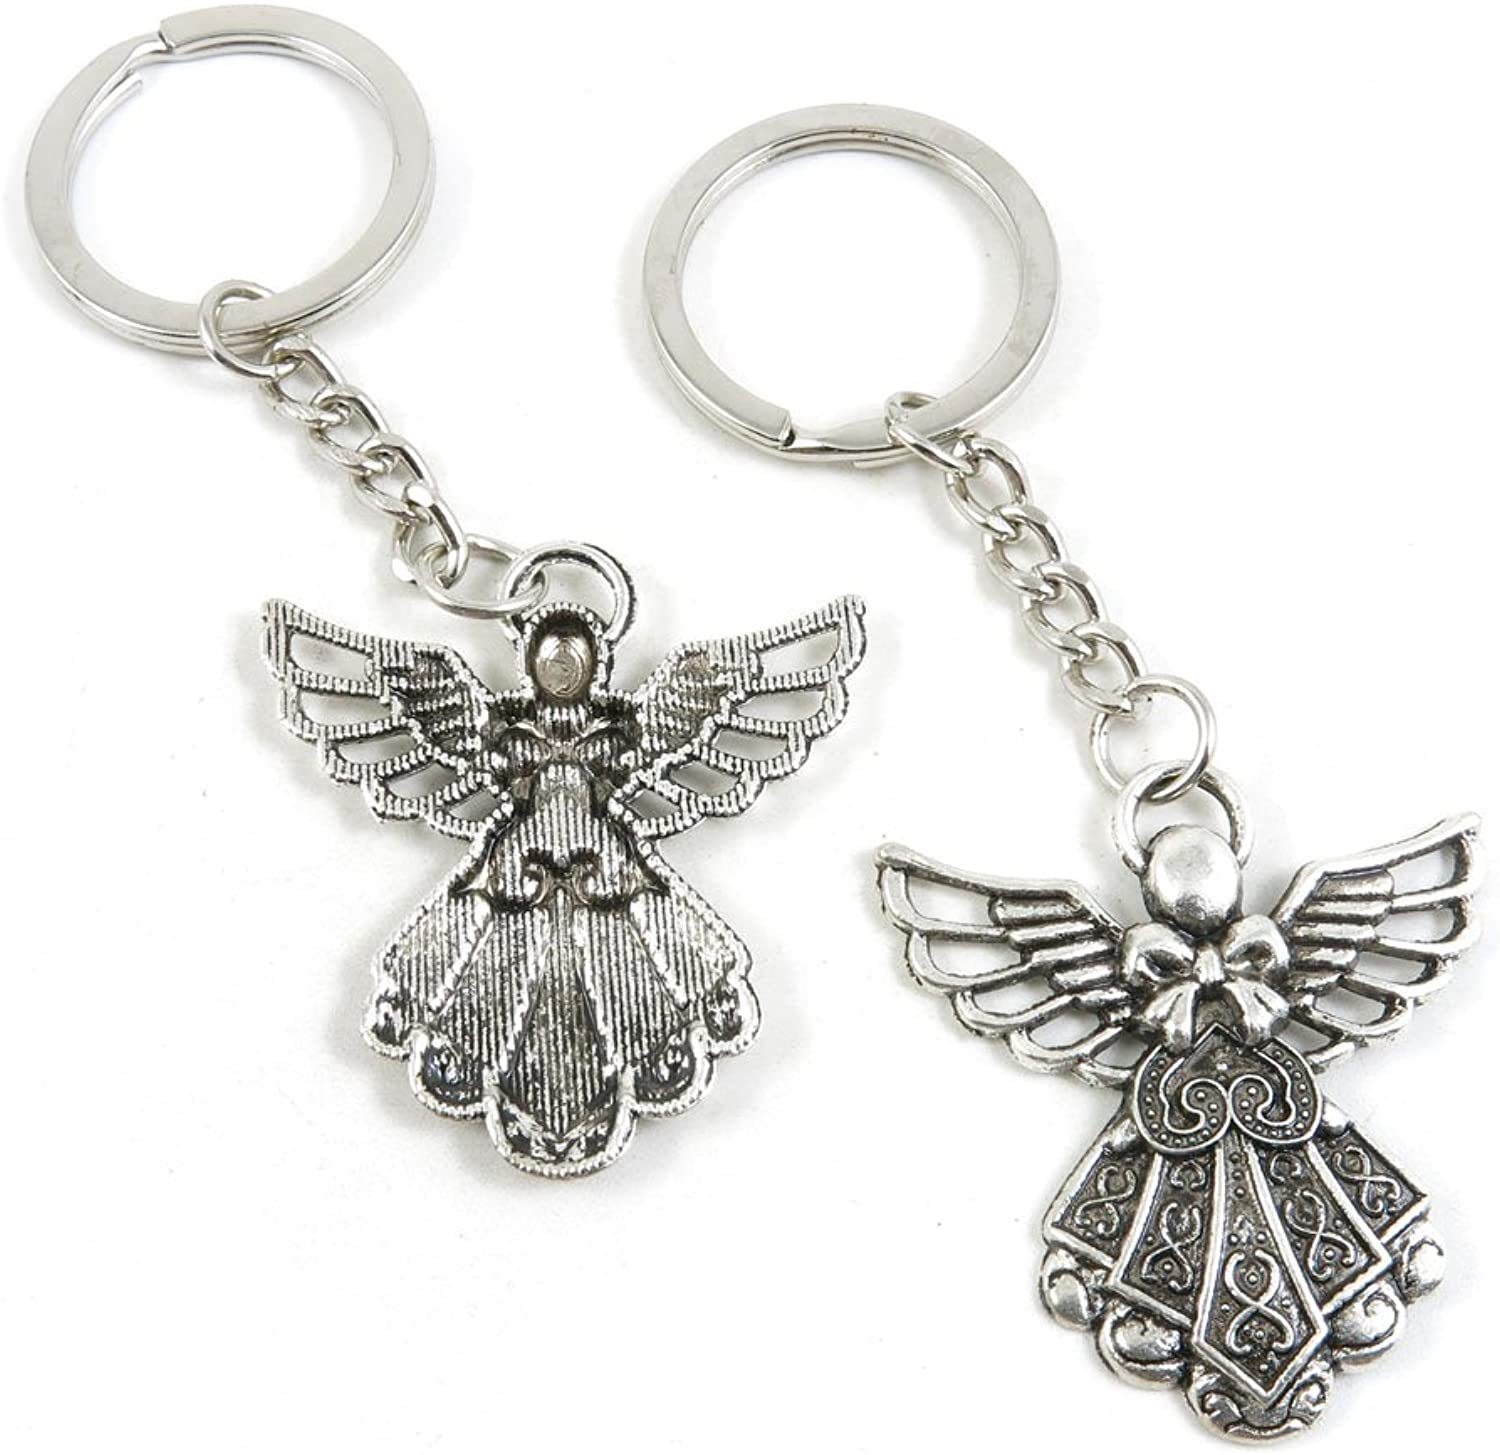 100 Pieces Keychain Keyring Door Car Key Chain Ring Tag Charms Bulk Supply Jewelry Making Clasp Findings W6UM5U Fairy Angel